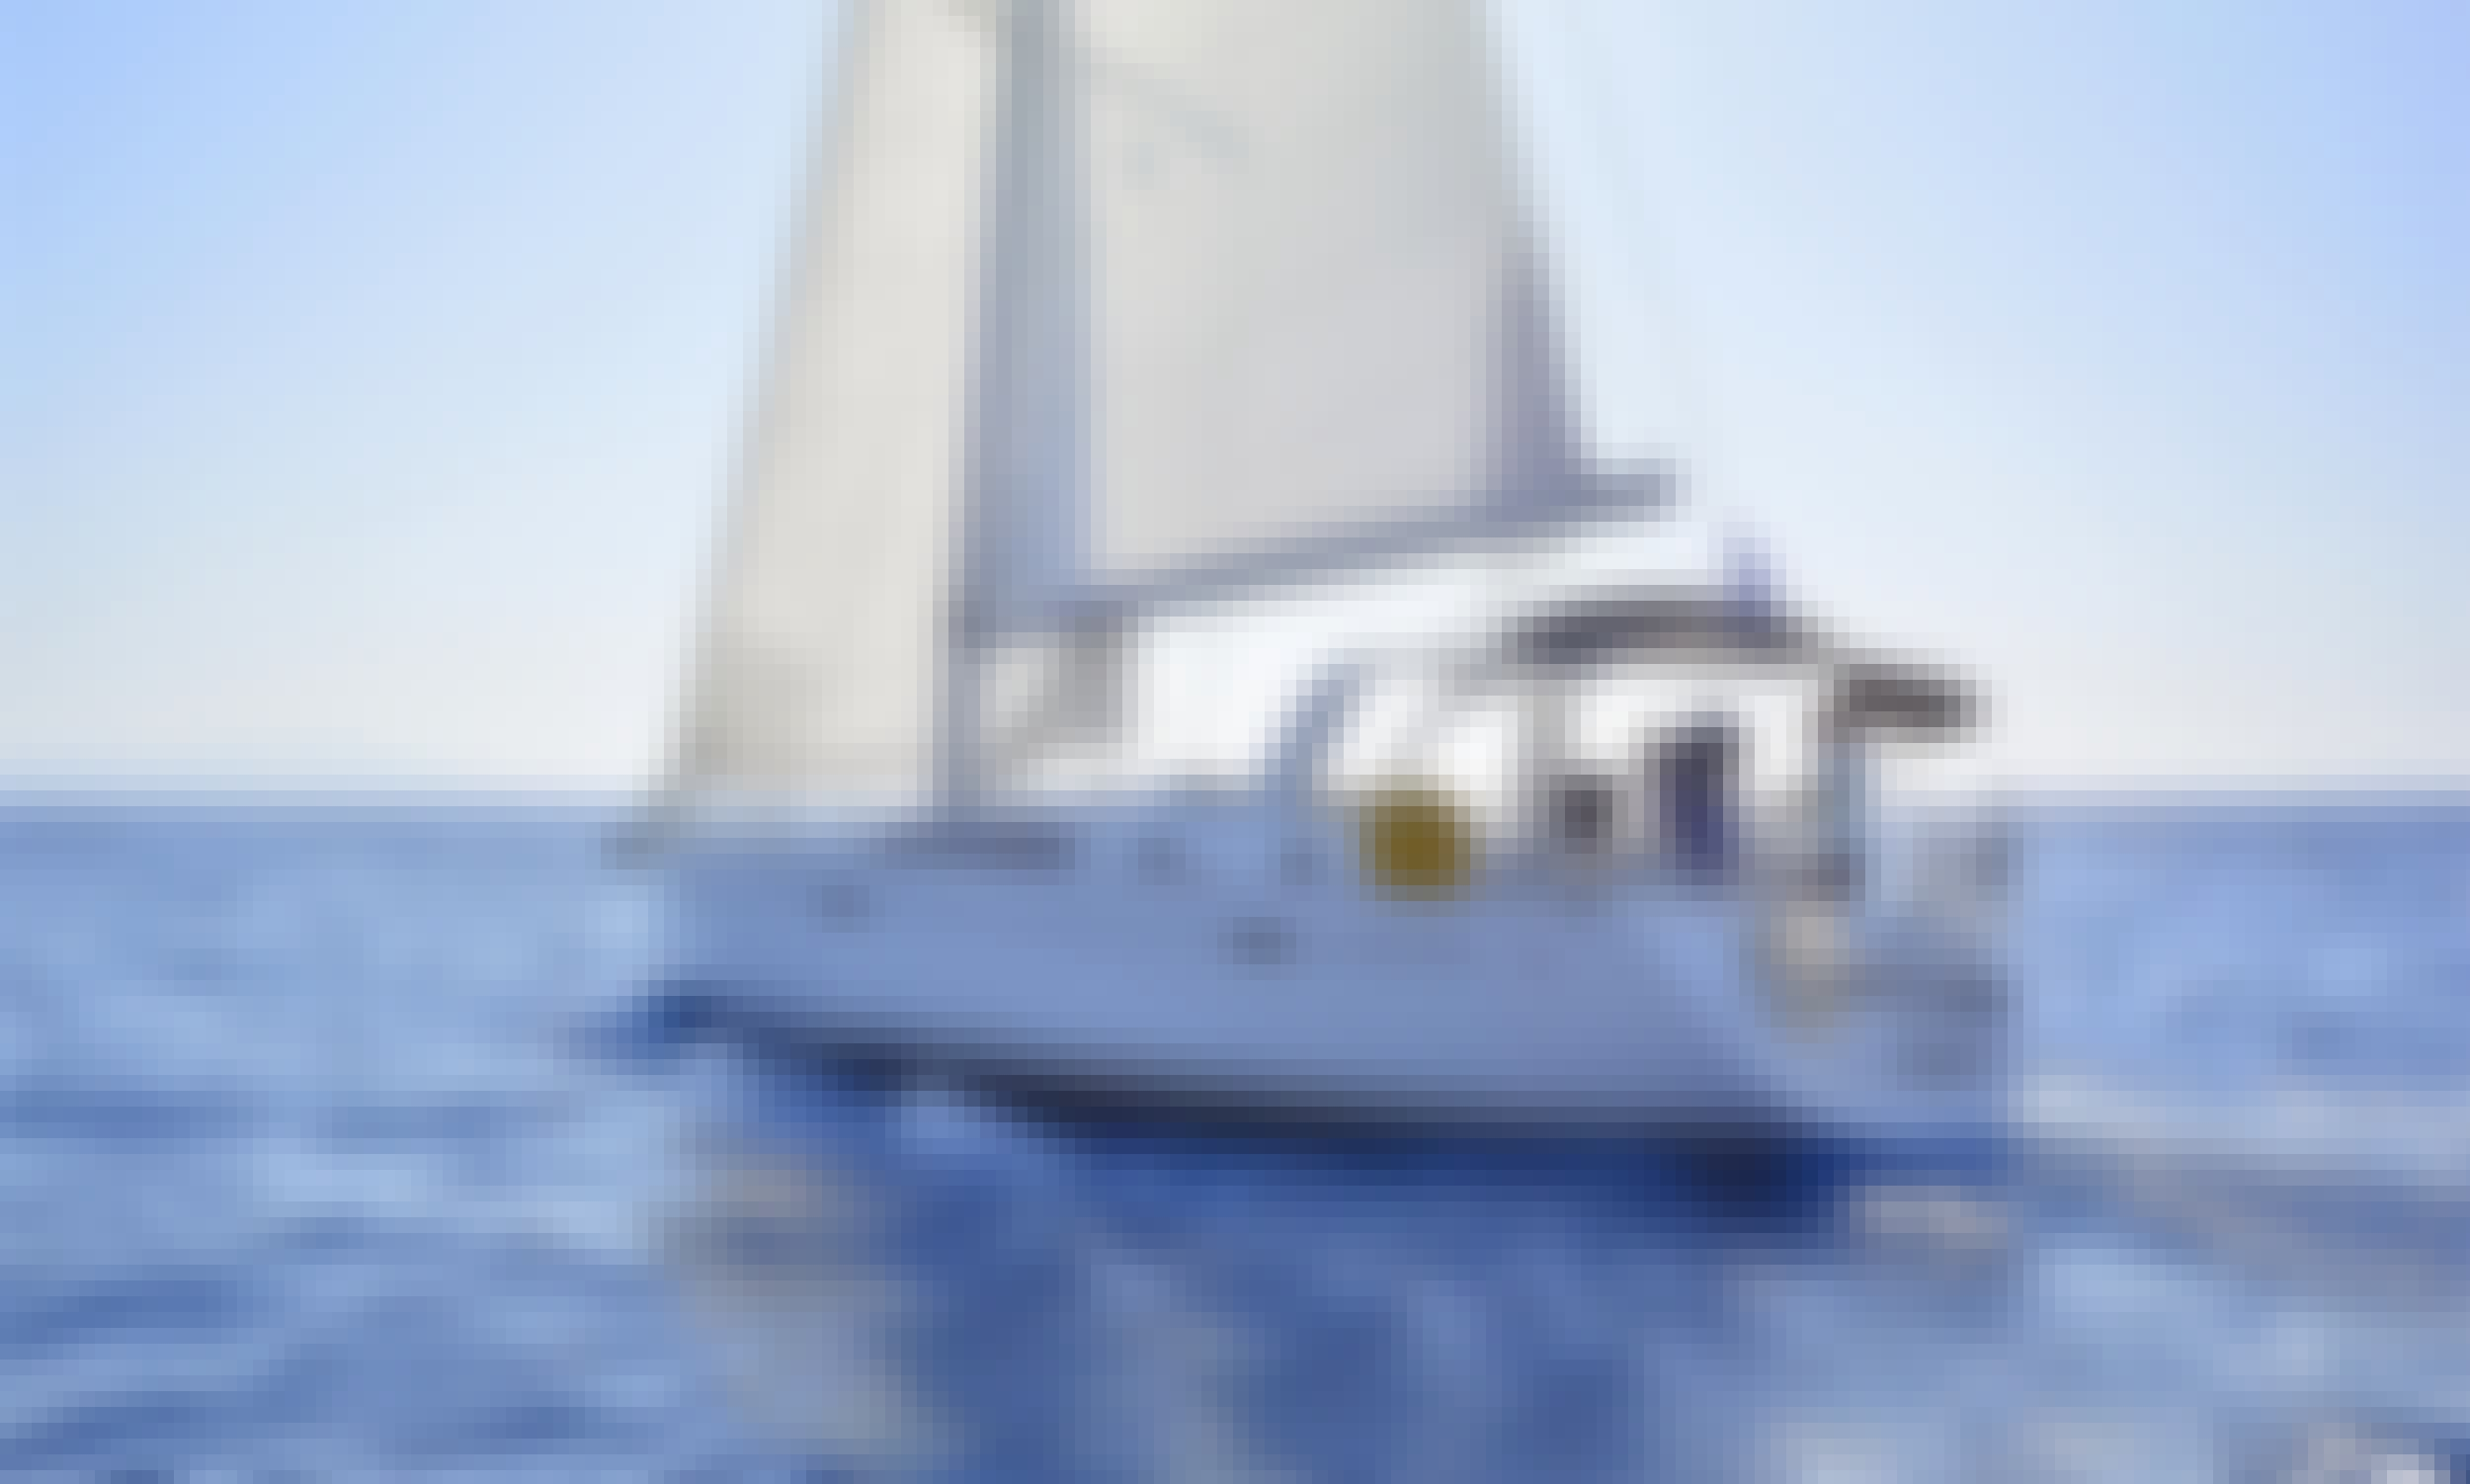 Oceanis 50 Family Sailing Yacht with A/C & Generator in Preveza, Greece